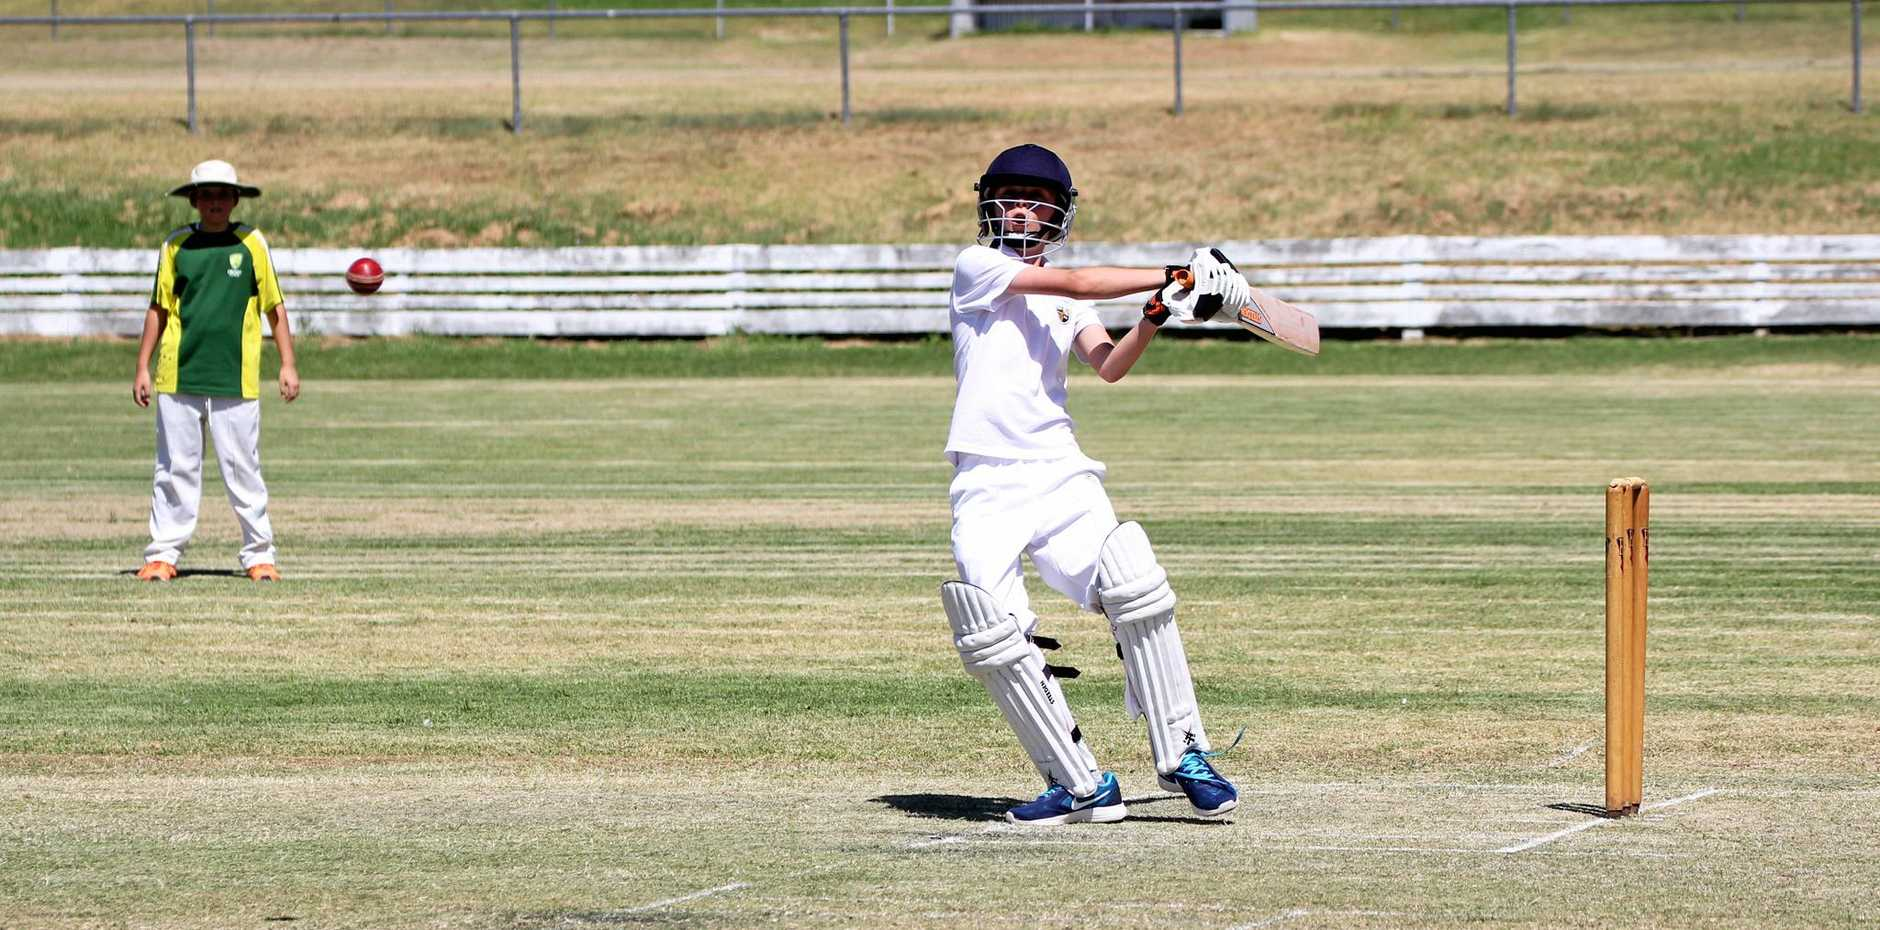 Lucas Wren takes a shot at Stanthorpe Junior Cricket on Saturday.